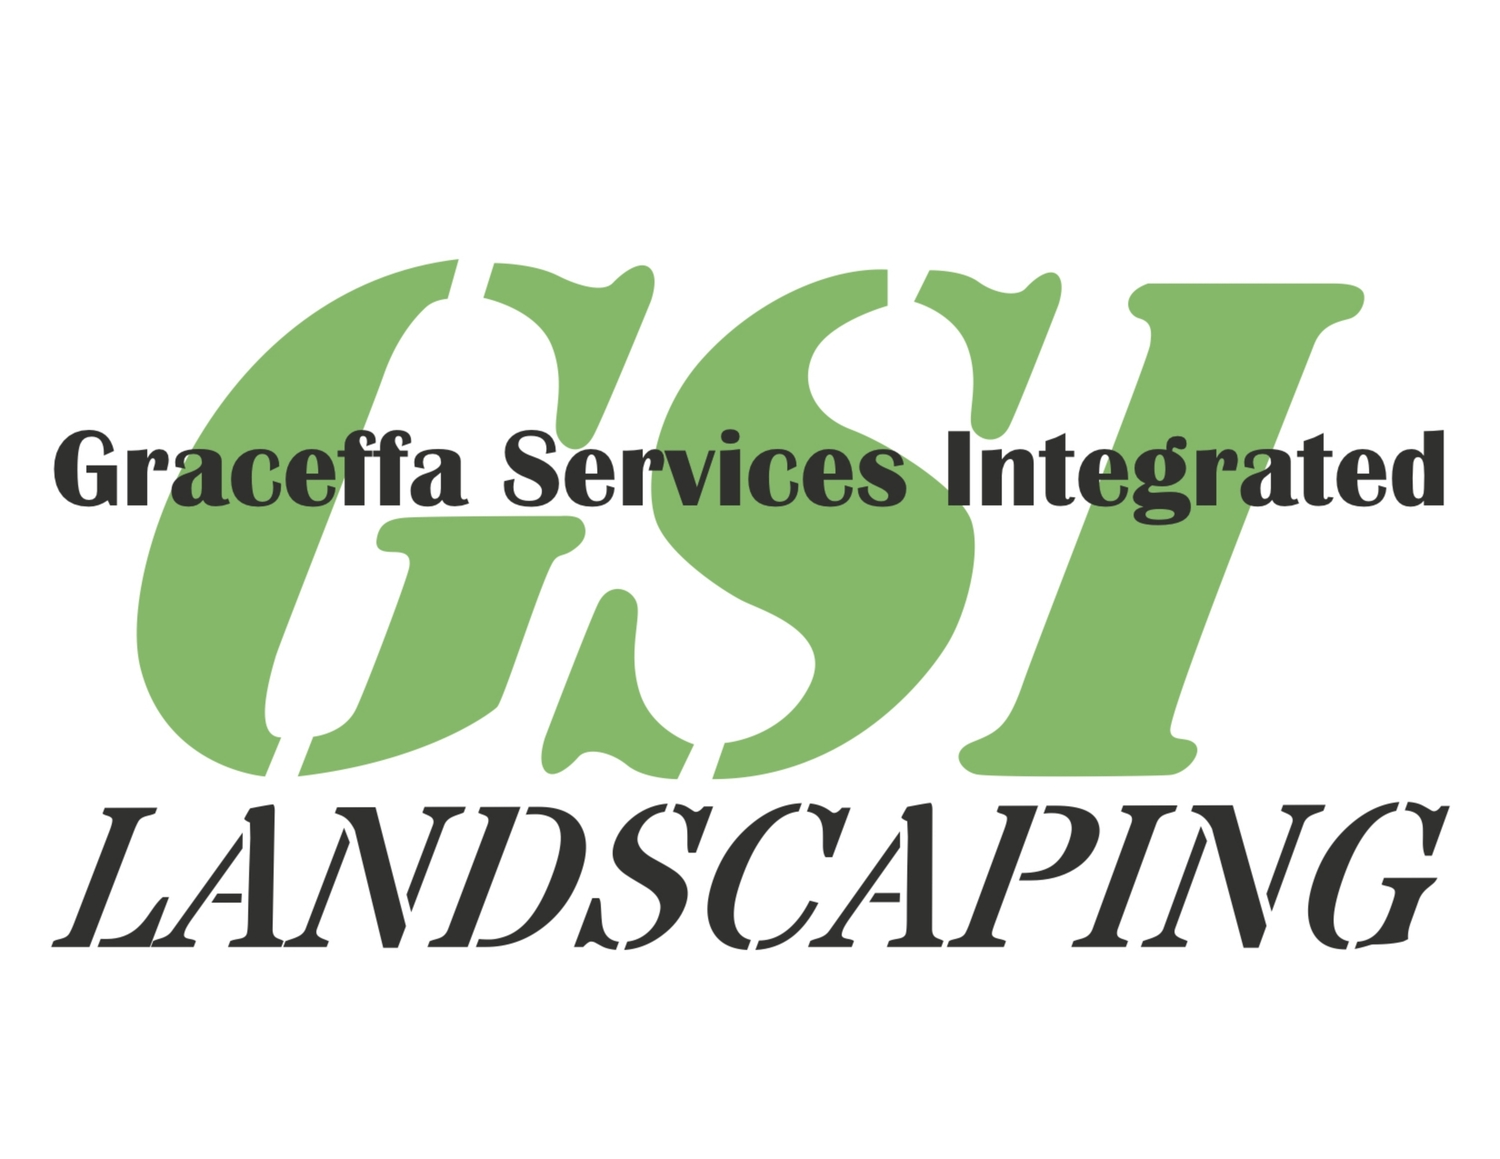 GSI: Graceffa Services Integrated